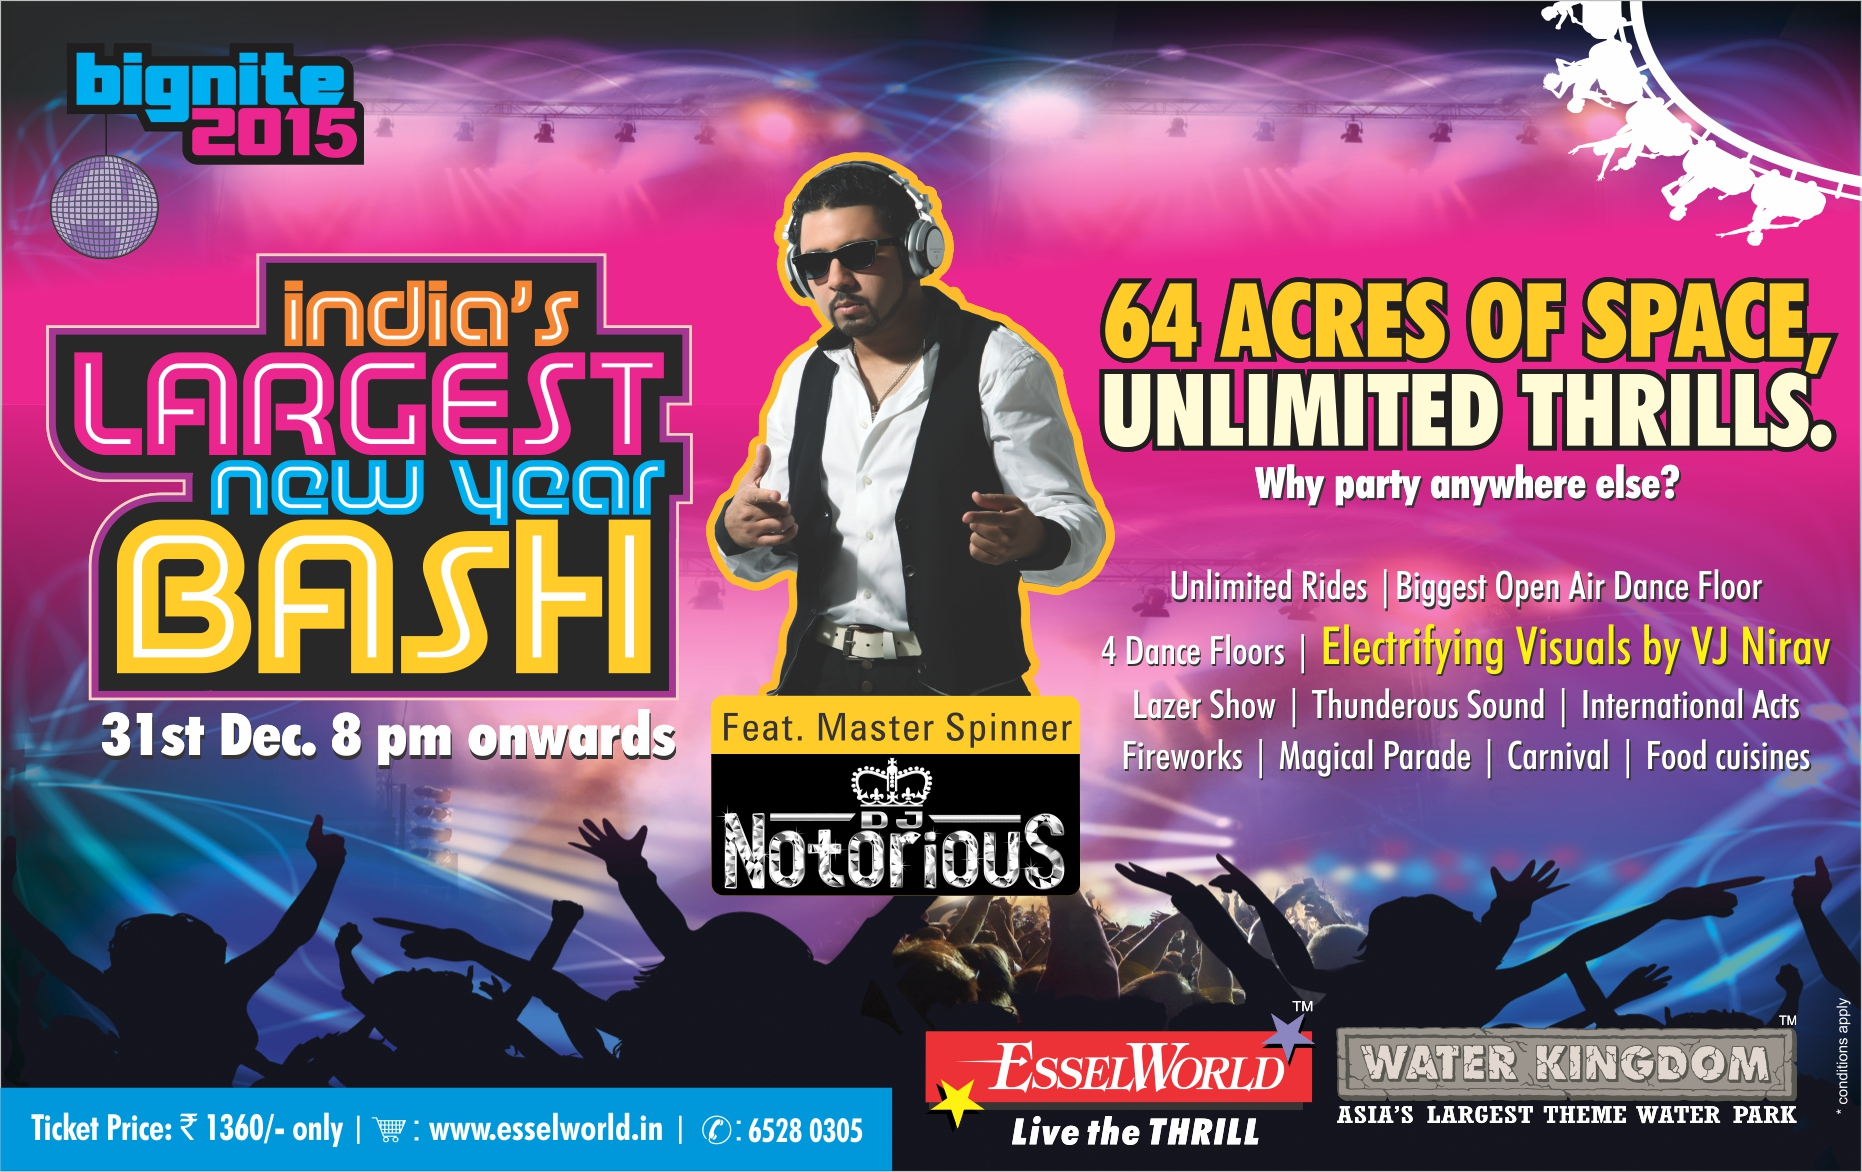 "India's largest new year bash ""Bignite 2015"